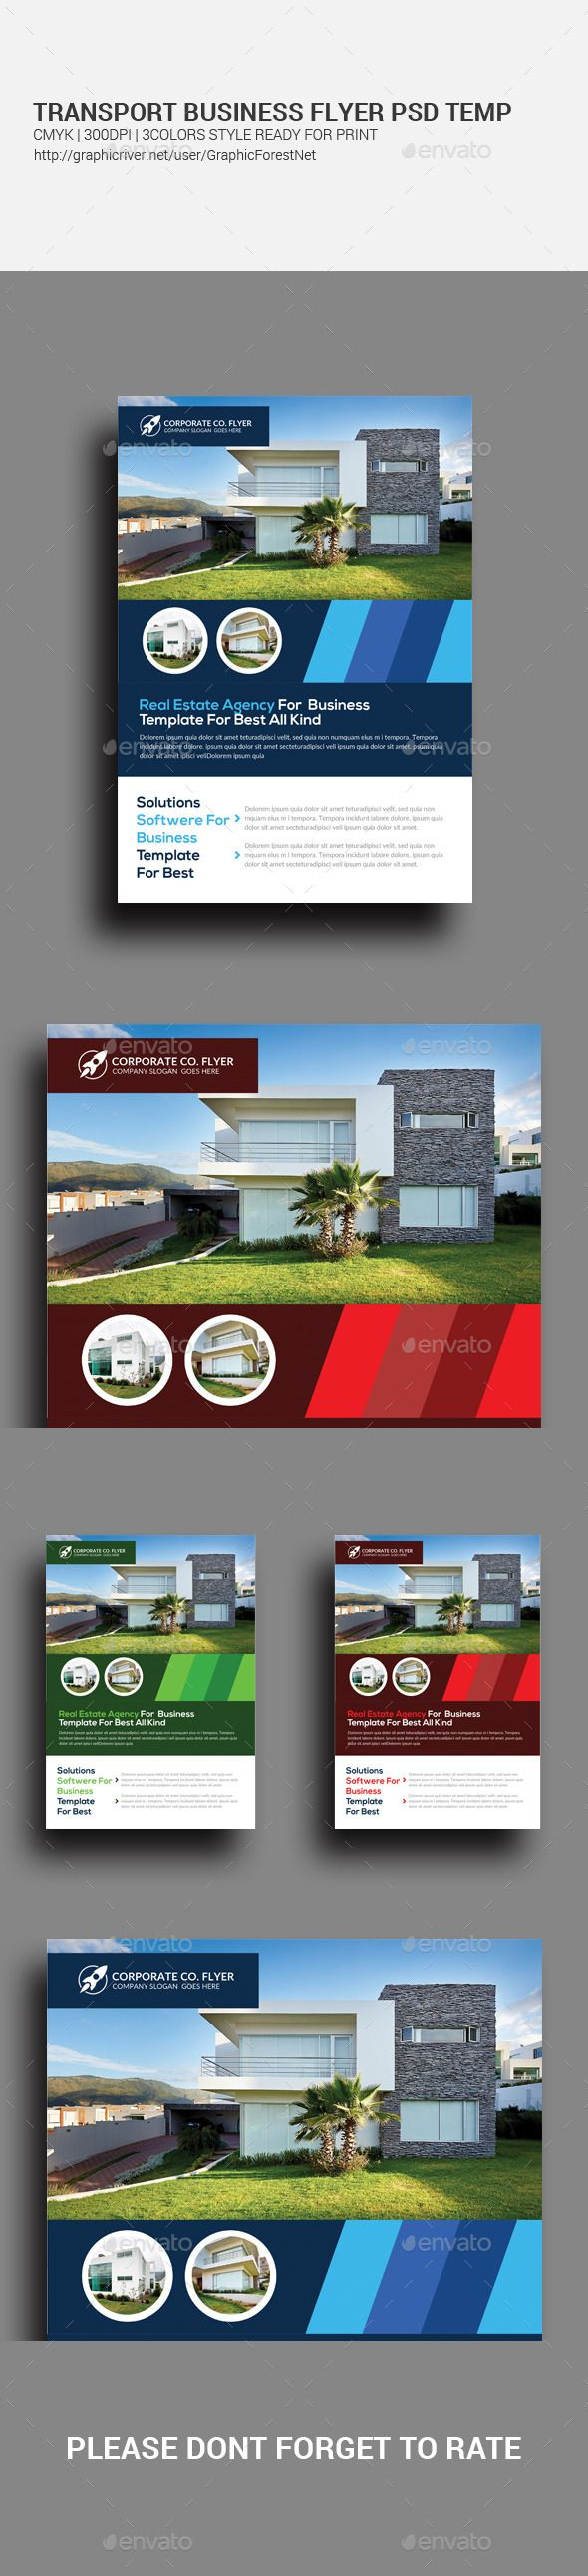 #Real #Estate Agency Business Flyer Template - #Corporate #Flyers Download here: https://graphicriver.net/item/real-estate-agency-business-flyer-template/11708785?ref=alena994